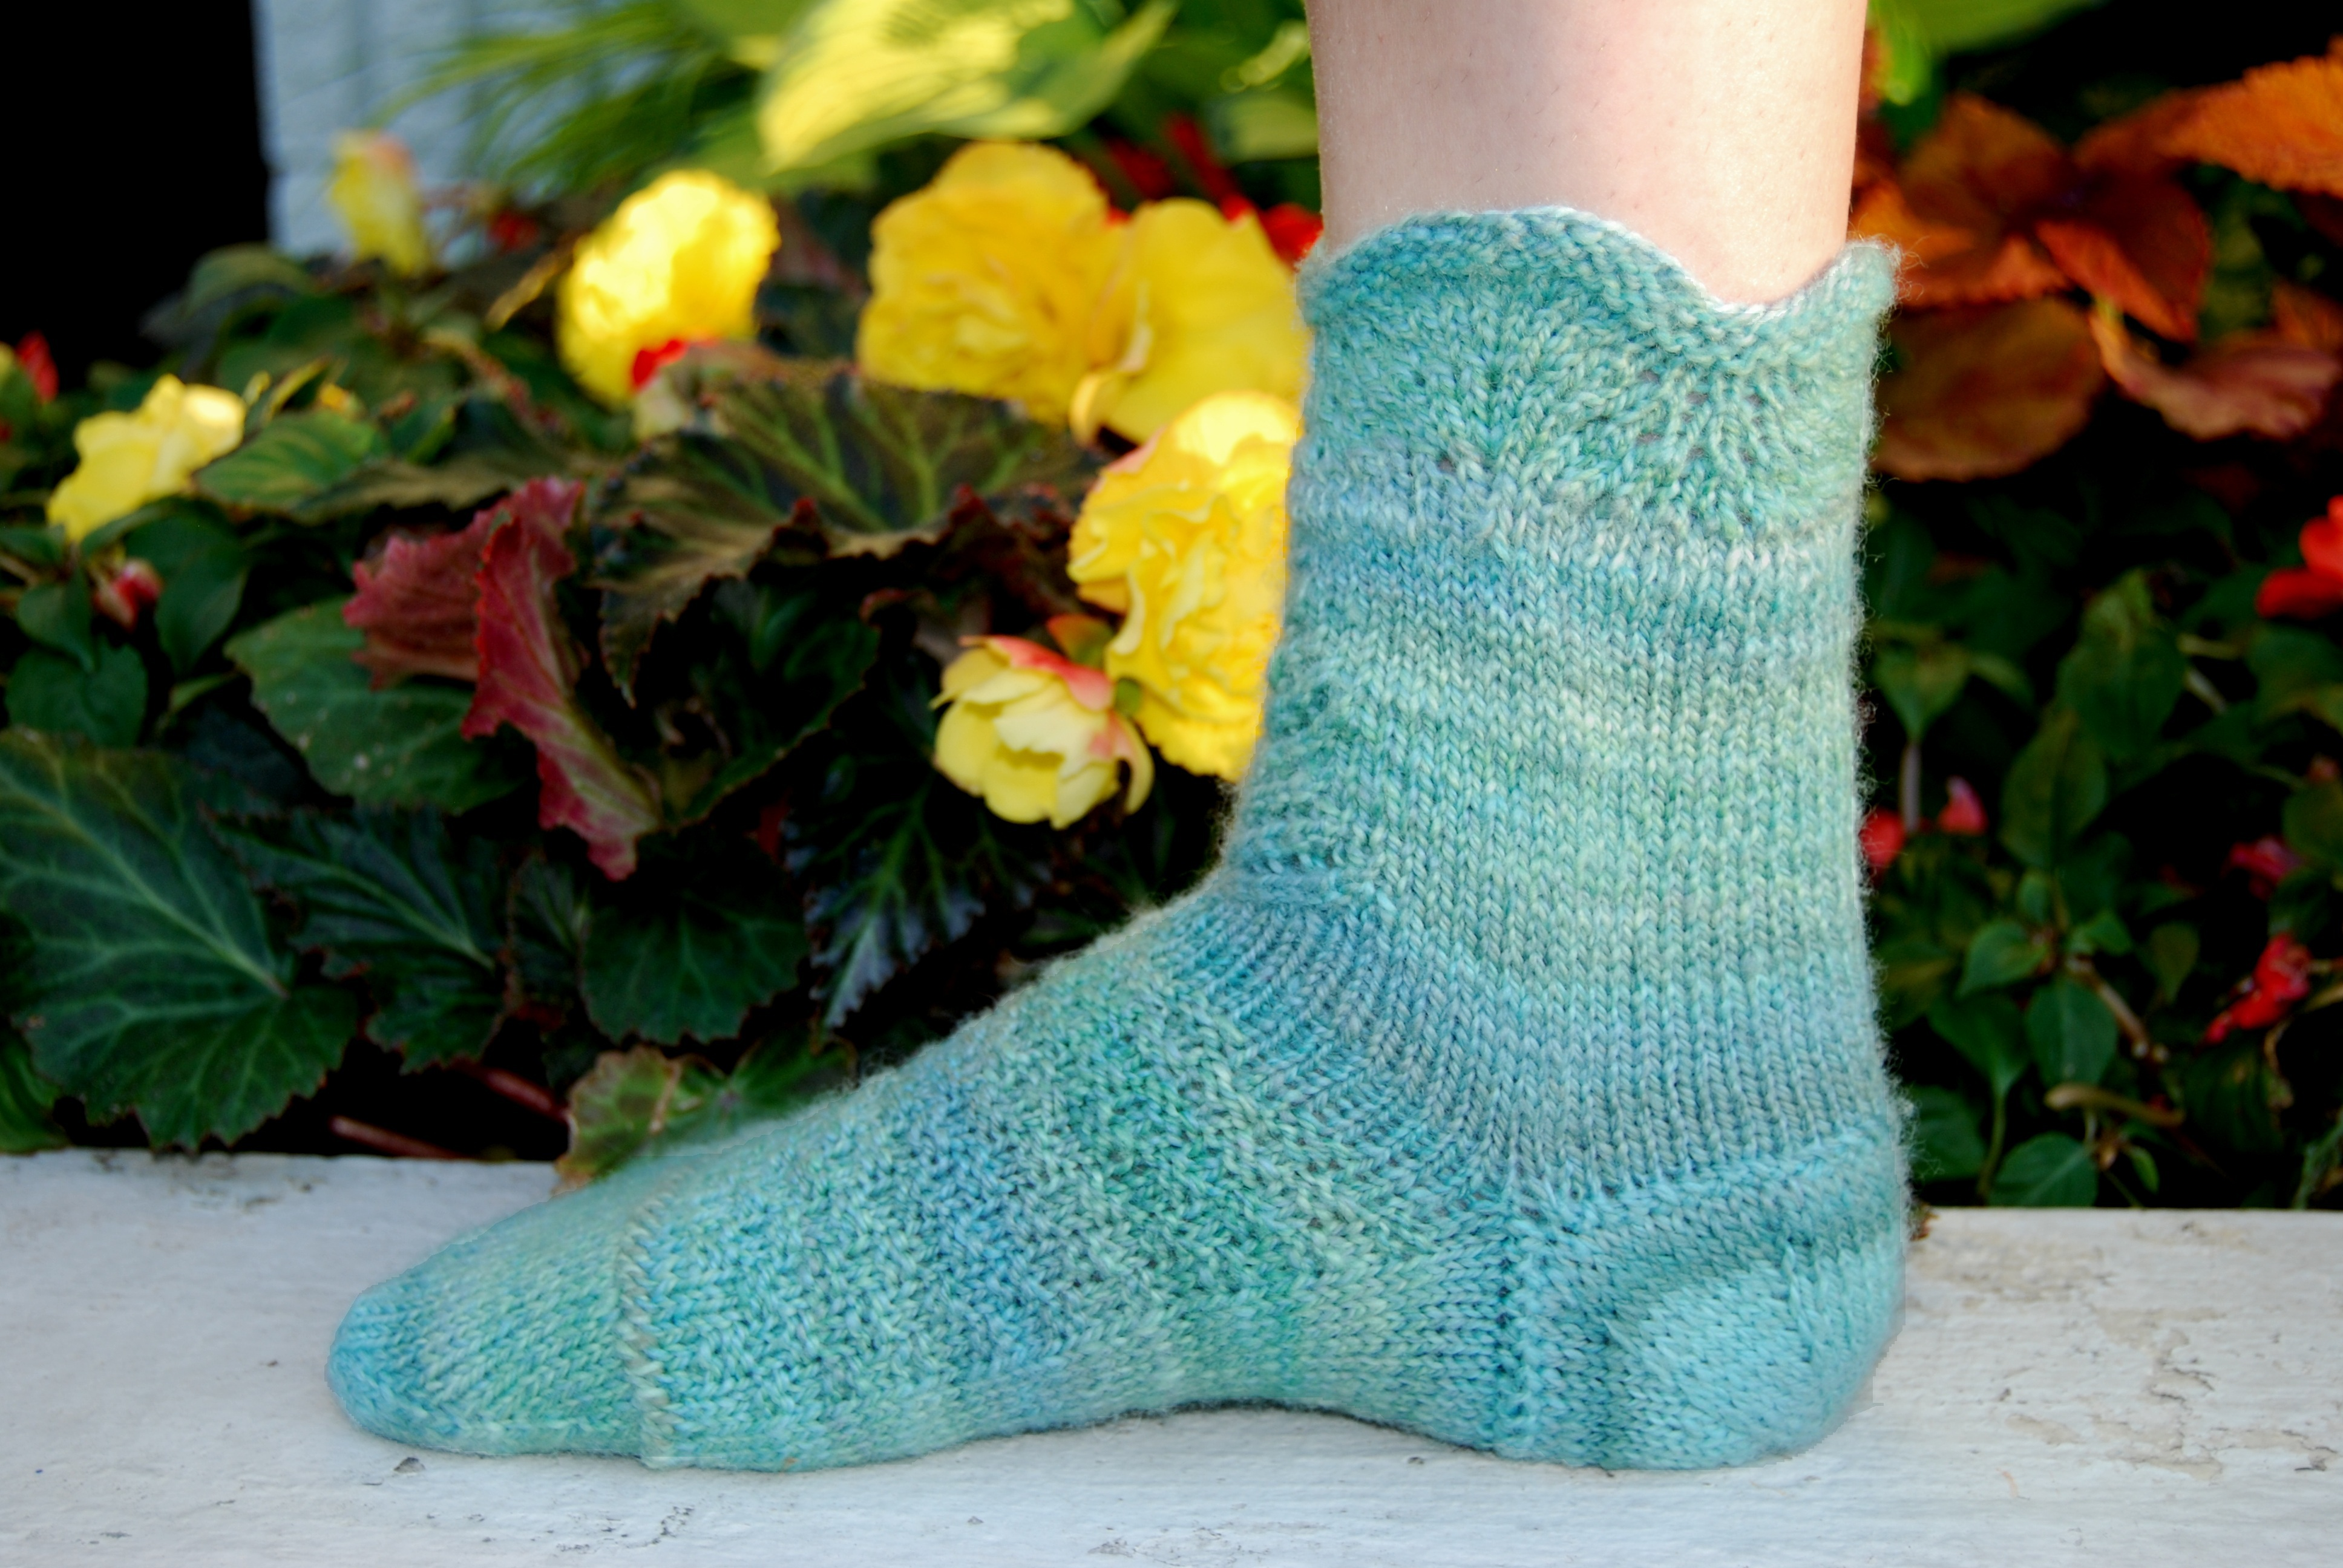 knitting, socks, sock summit, TAAT designs, indie dyer, hand-dyed, hand spun, Design for Glory